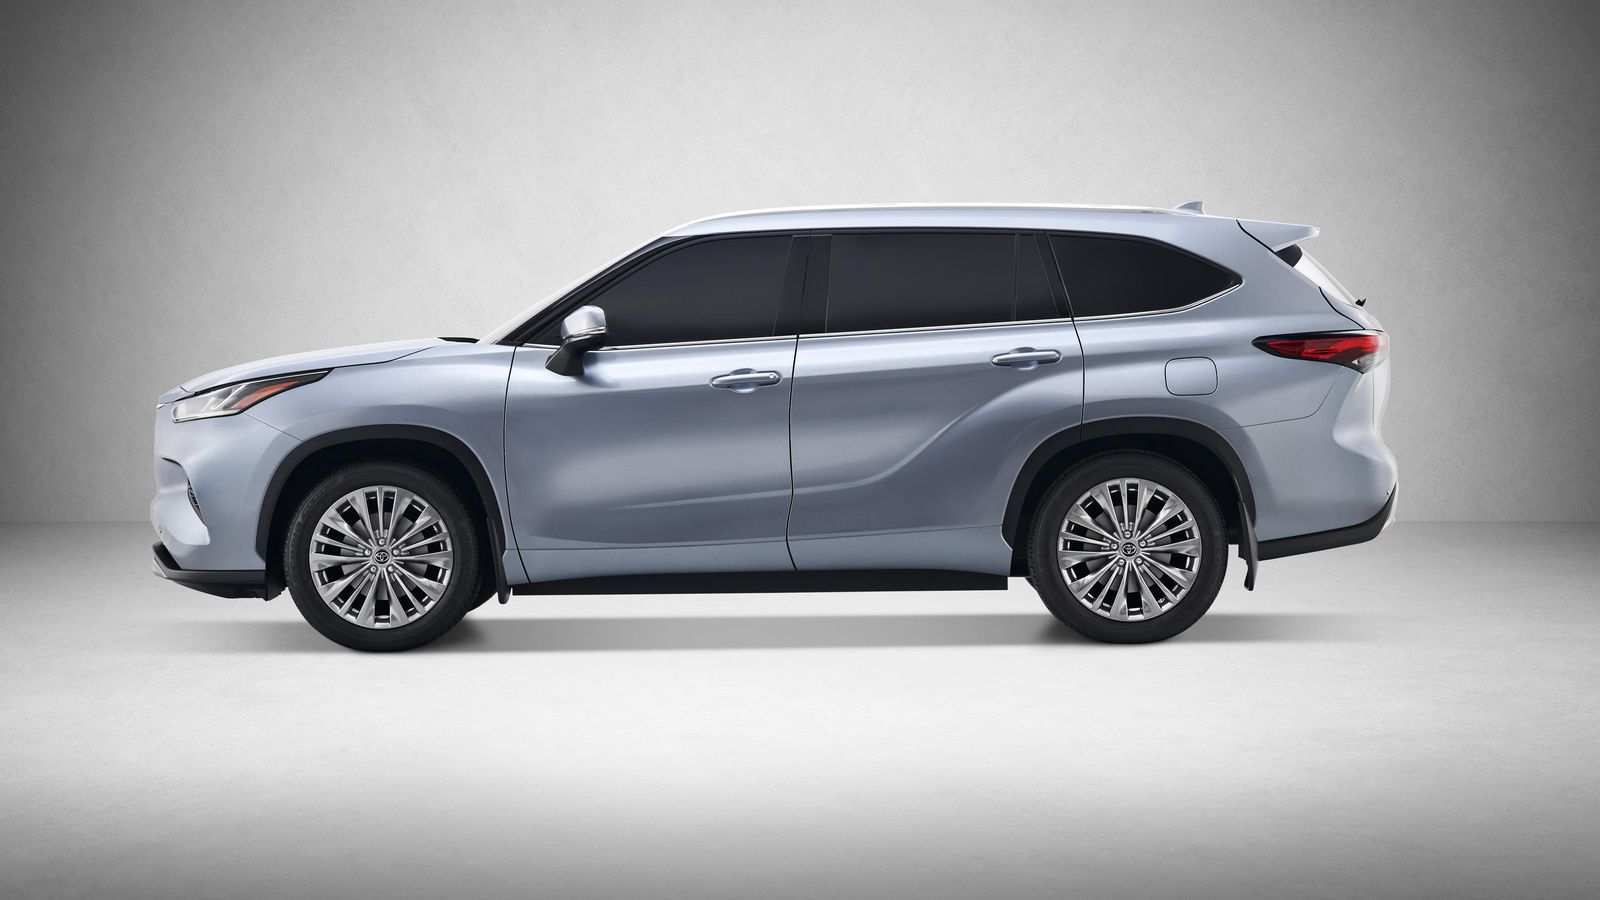 11 New Toyota Kluger 2020 Images with Toyota Kluger 2020